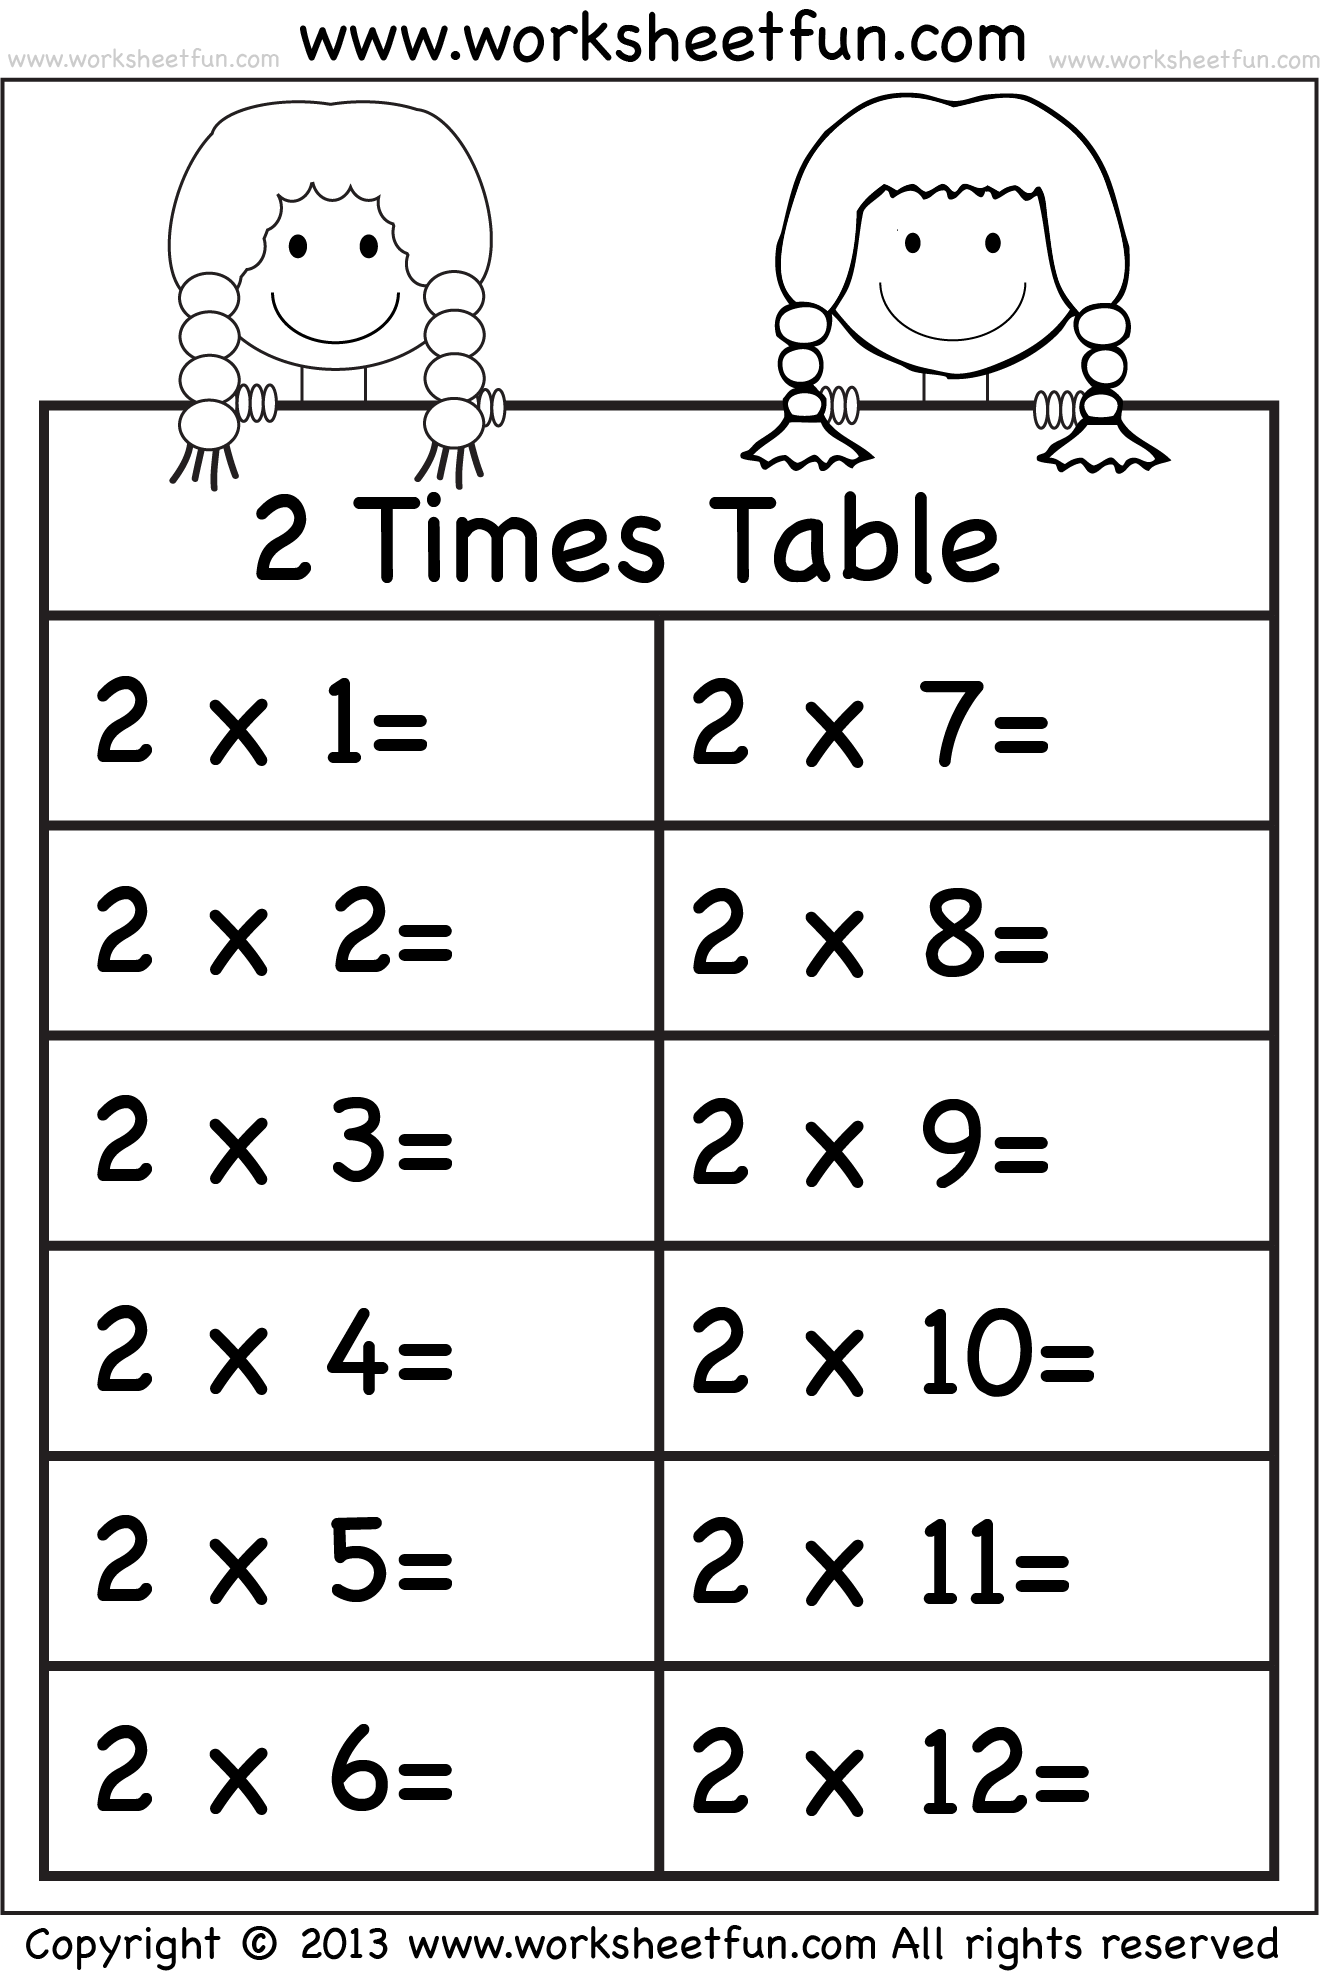 Times Tables Worksheets – 2, 3, 4, 5, 6, 7, 8, 9, 10, 11 And